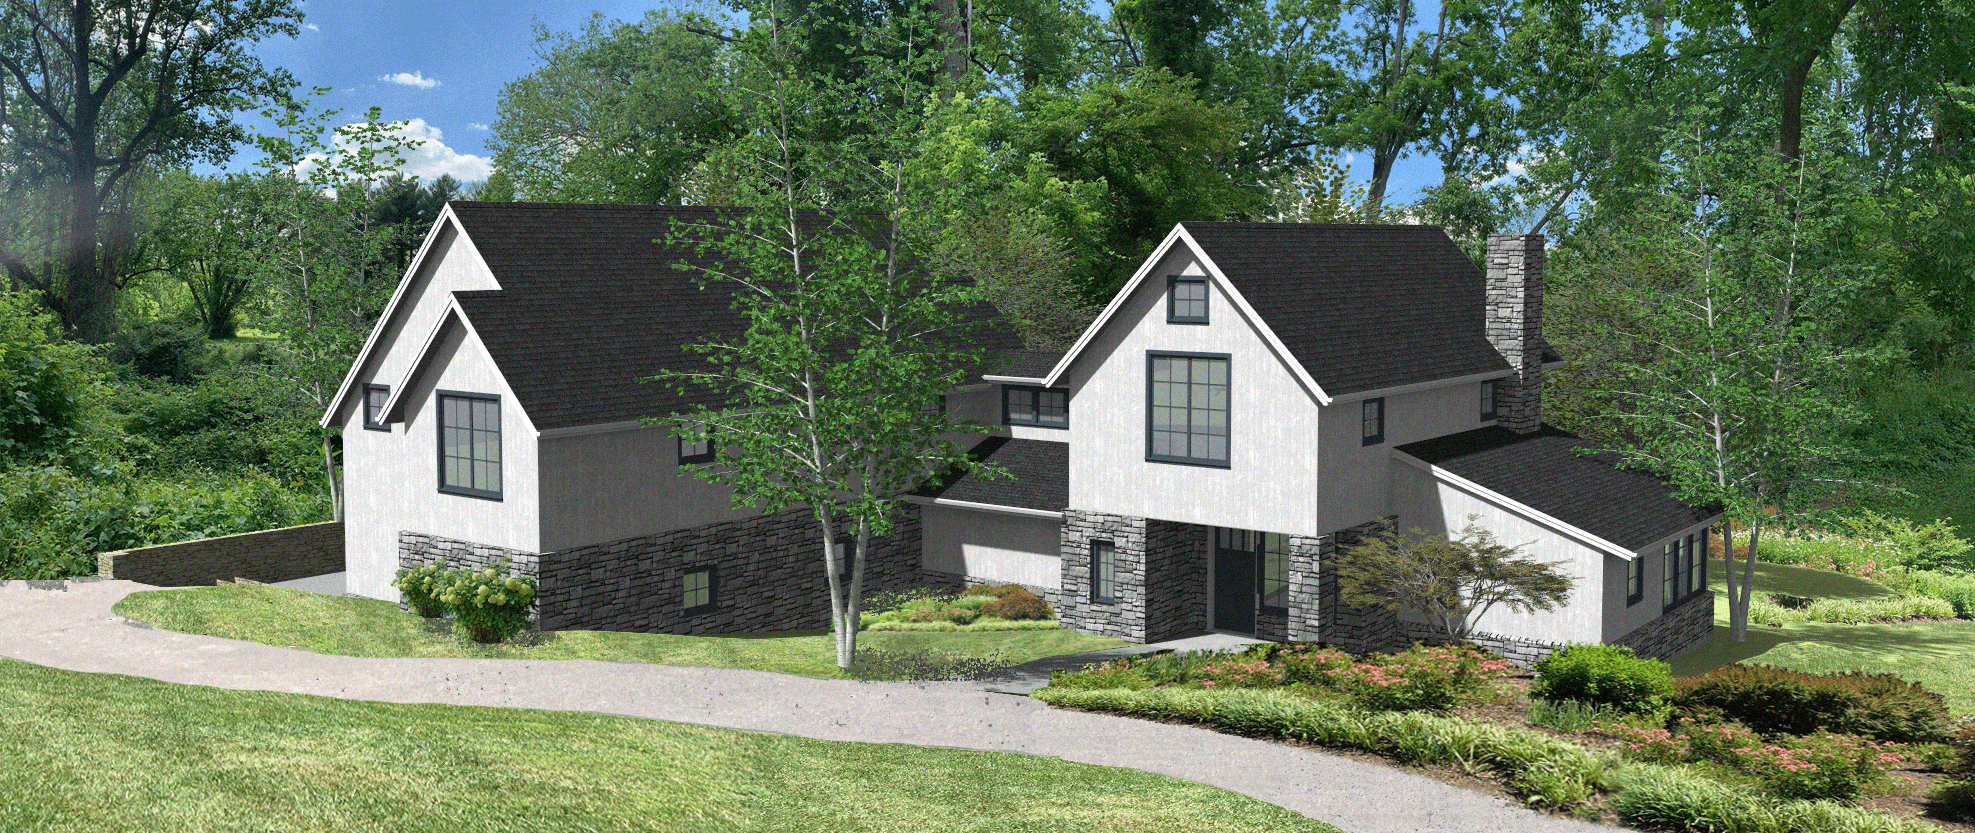 5 Wyndam Court - Farmhouse High res 3D rendering of front